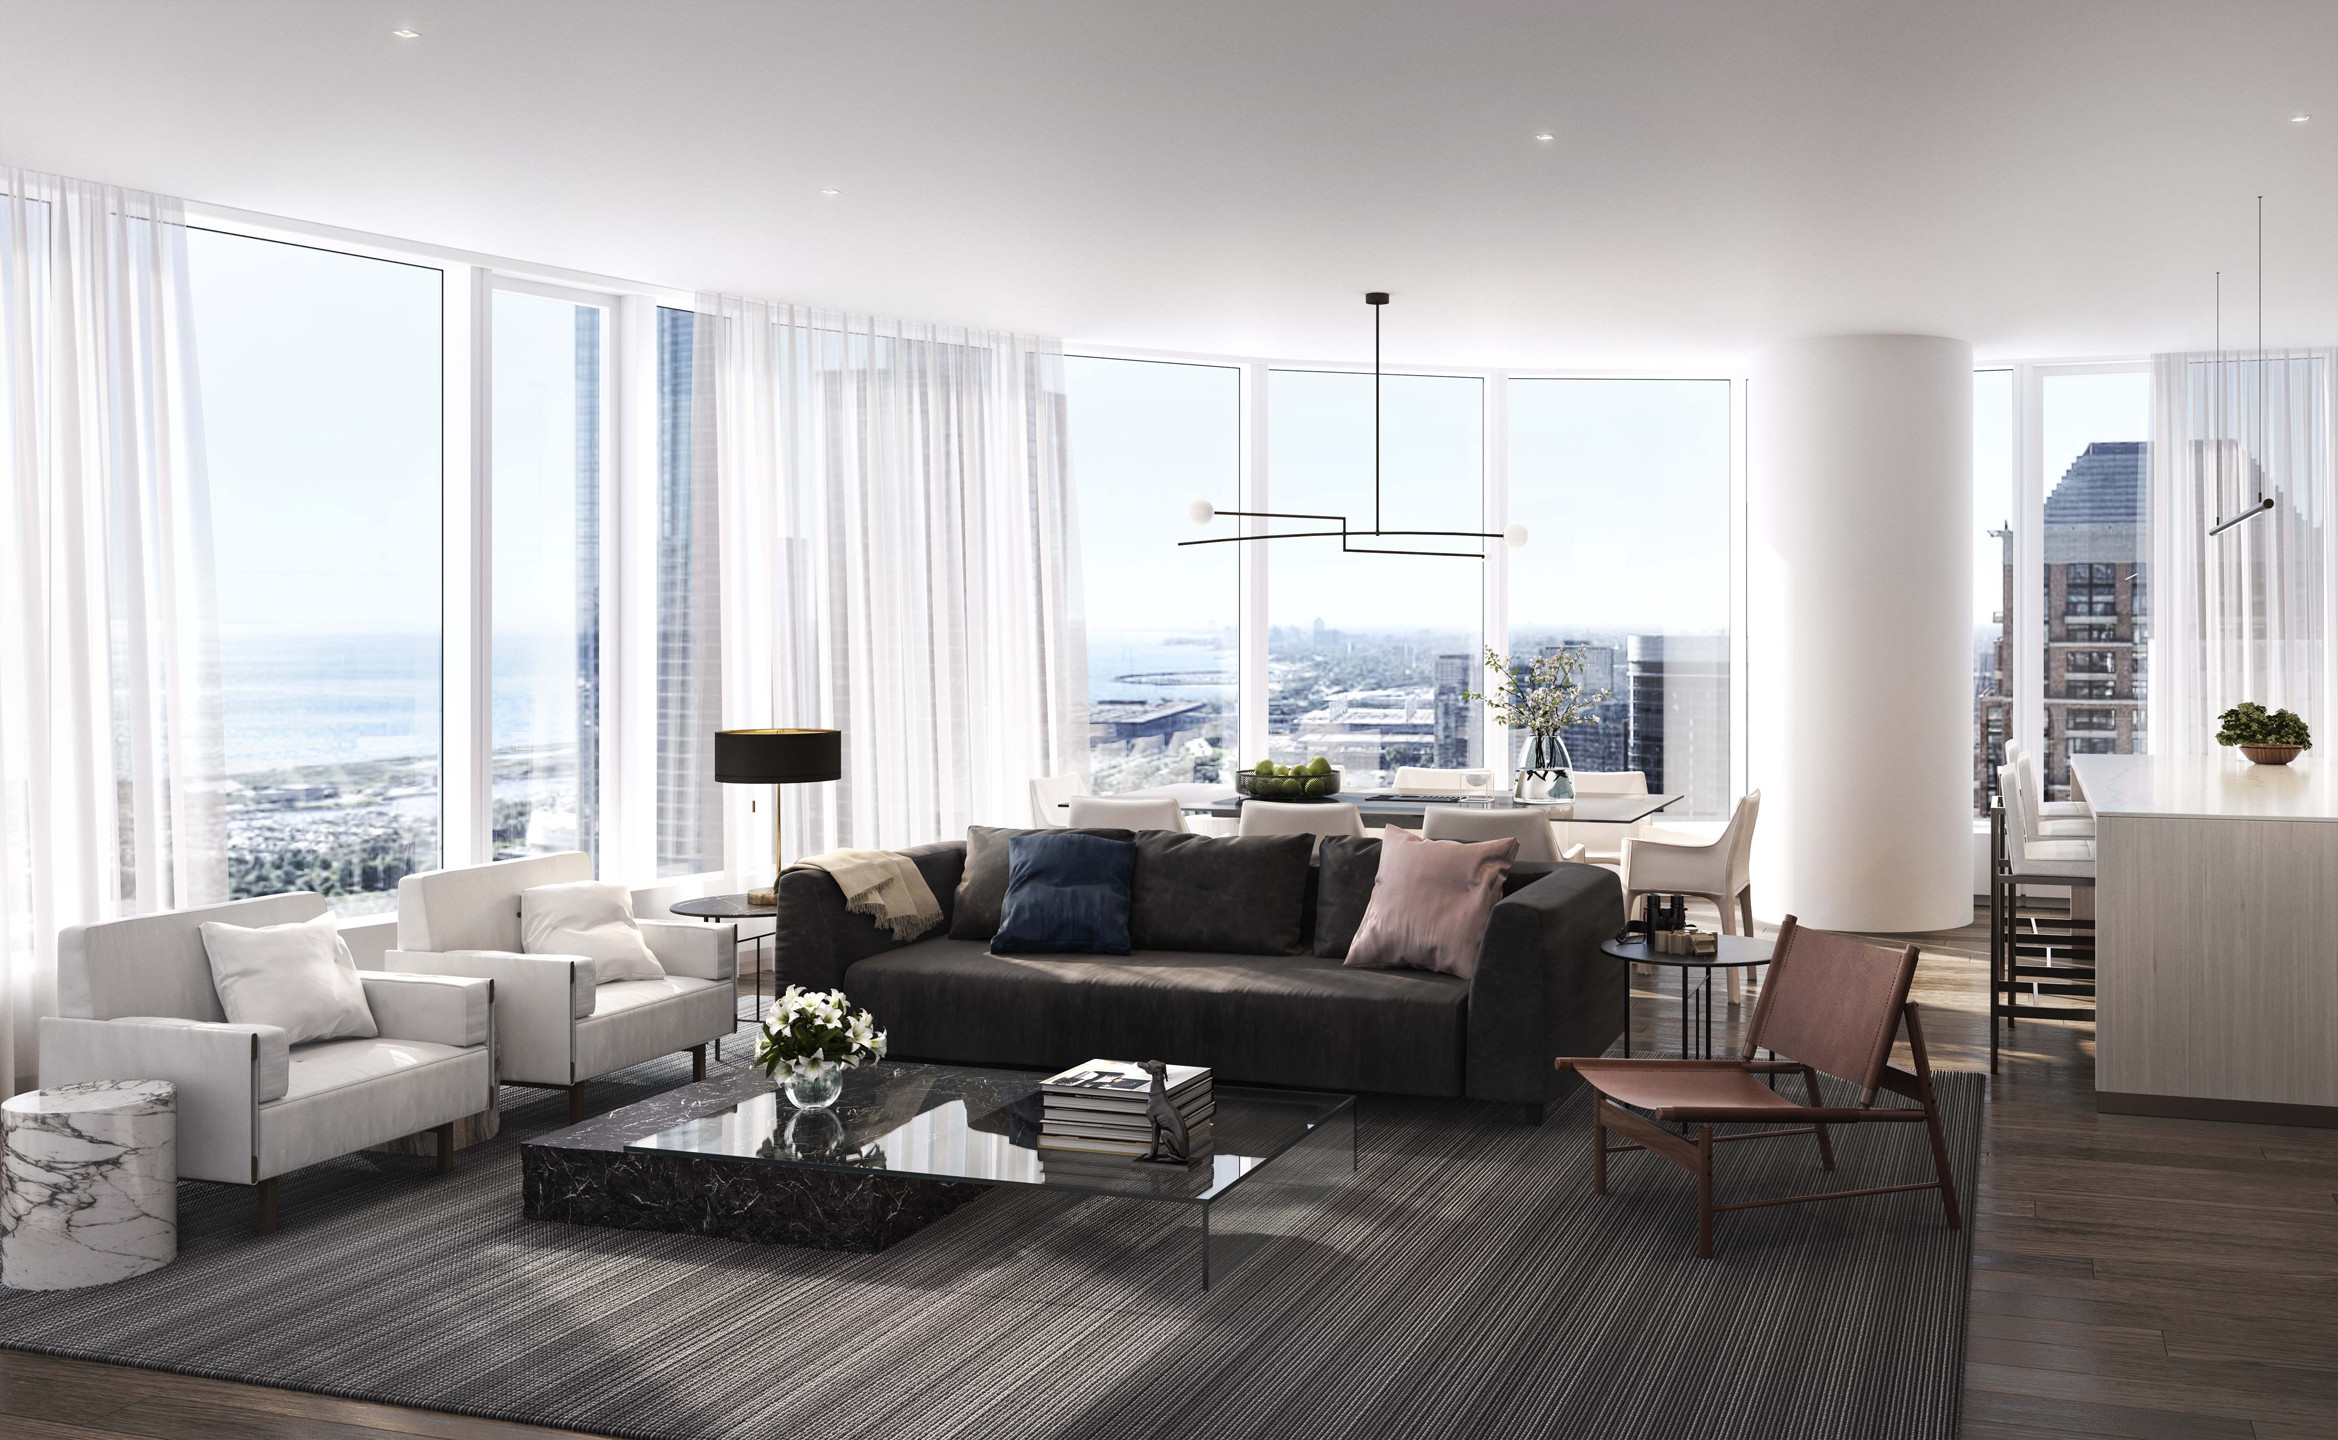 Apartment Living Room Ideas Sales Begin for Ultra Luxury Condo tower On Chicago's